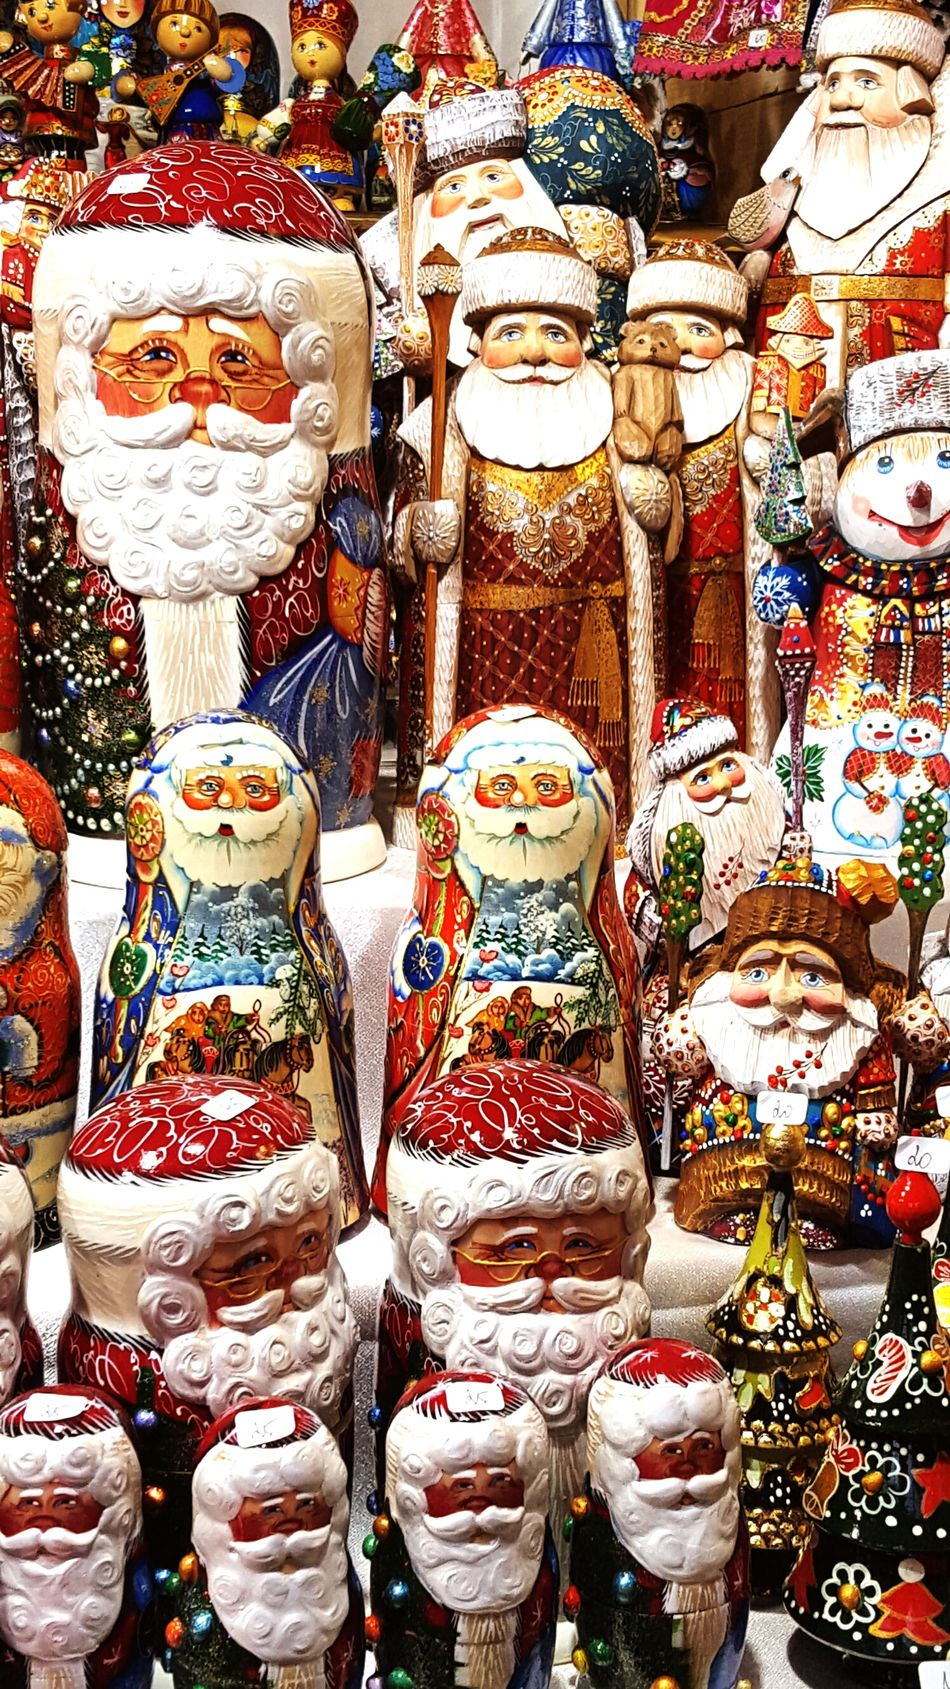 For Sale Multi Colored Market Stall Marché De Noël Christmastime Christmas Decorations Santa Claus